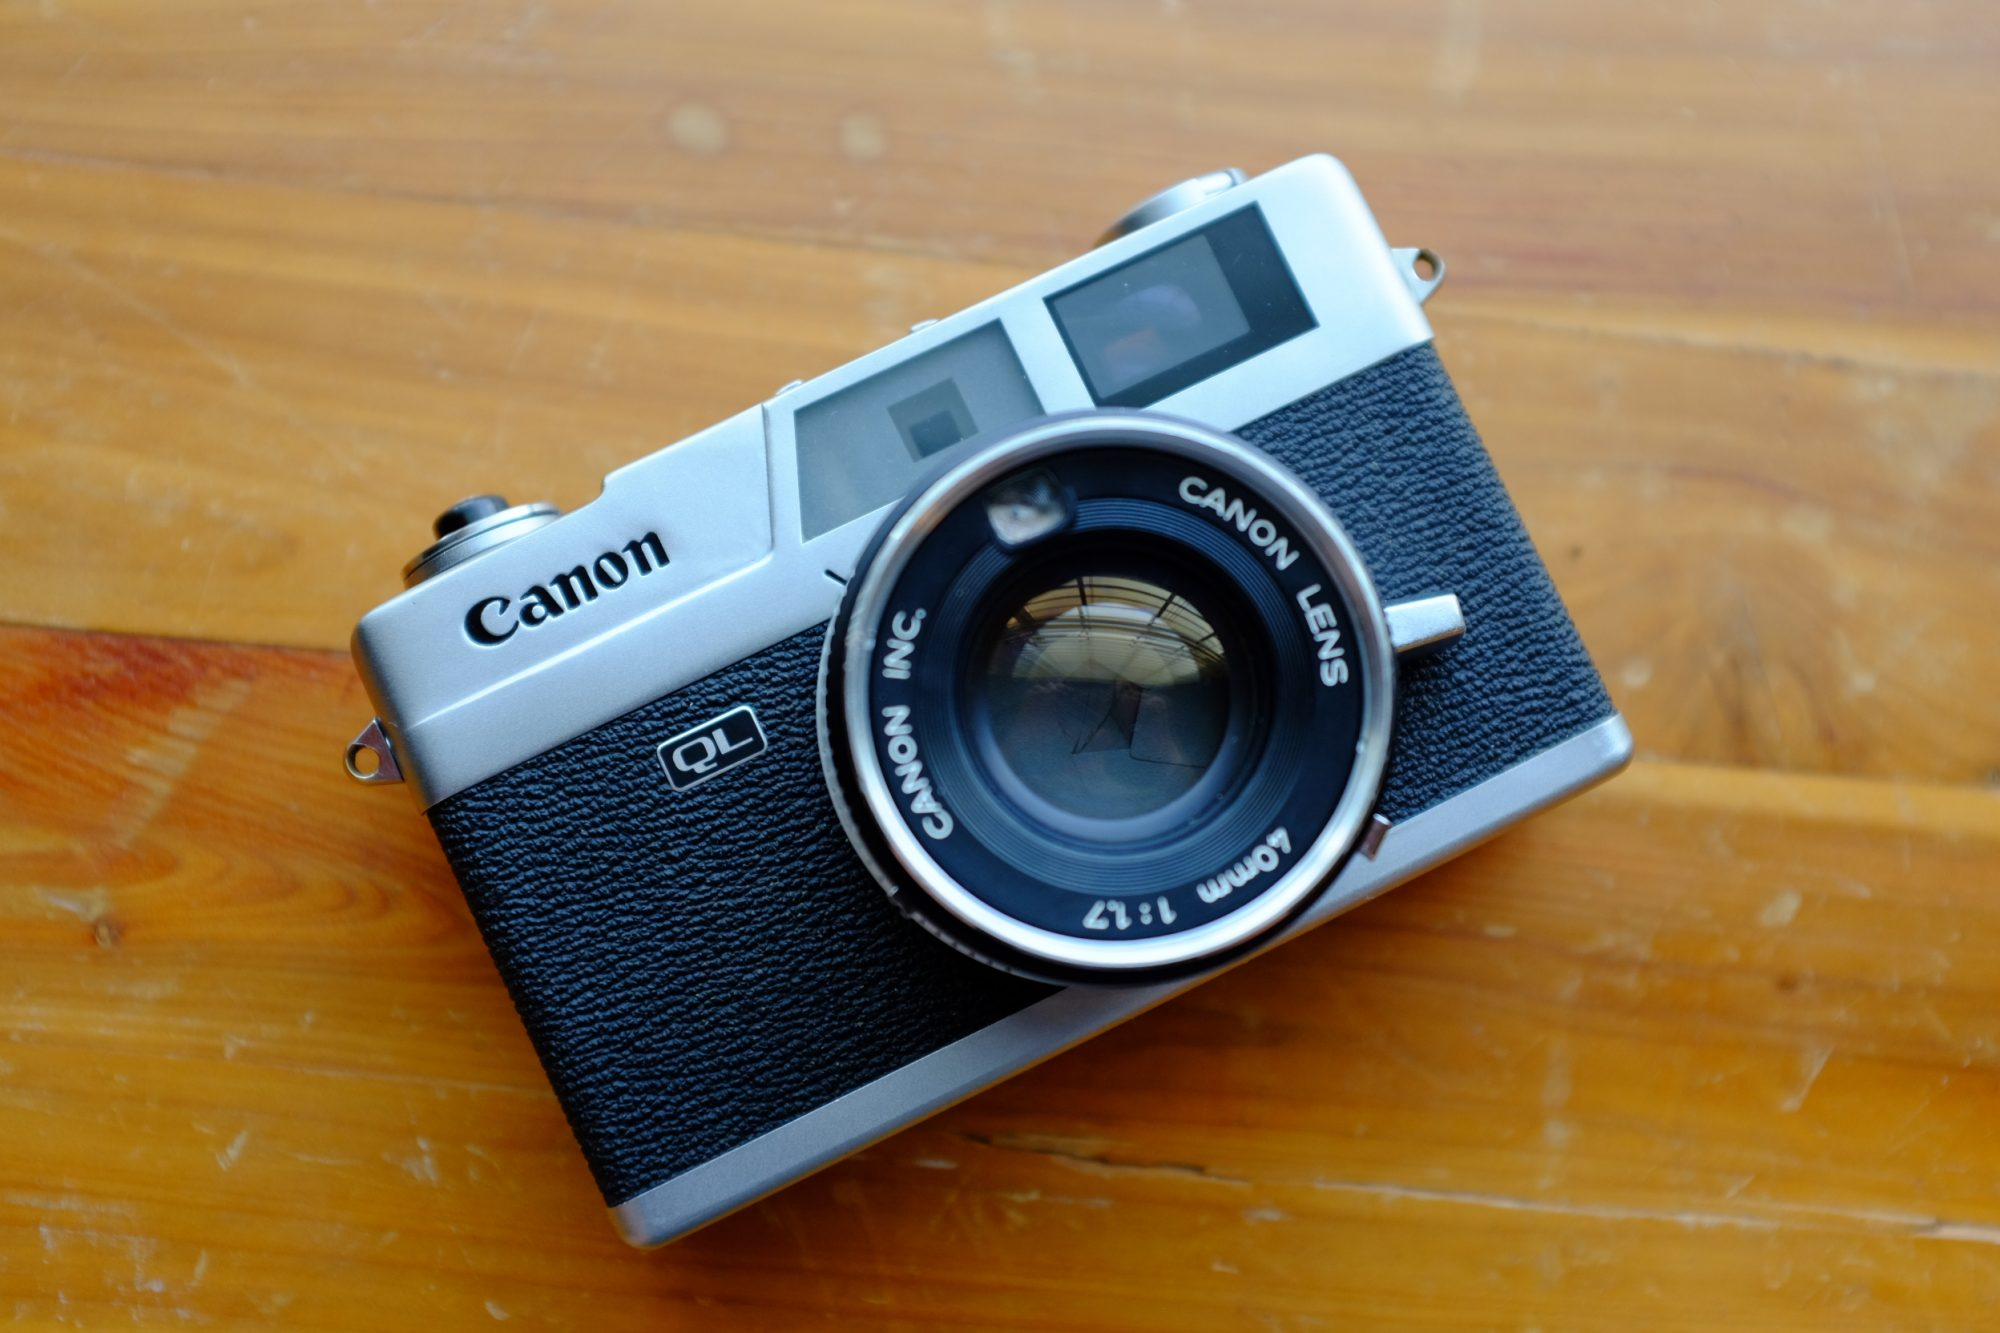 Canonet Ql 17 (Pic: Andrew Smith)